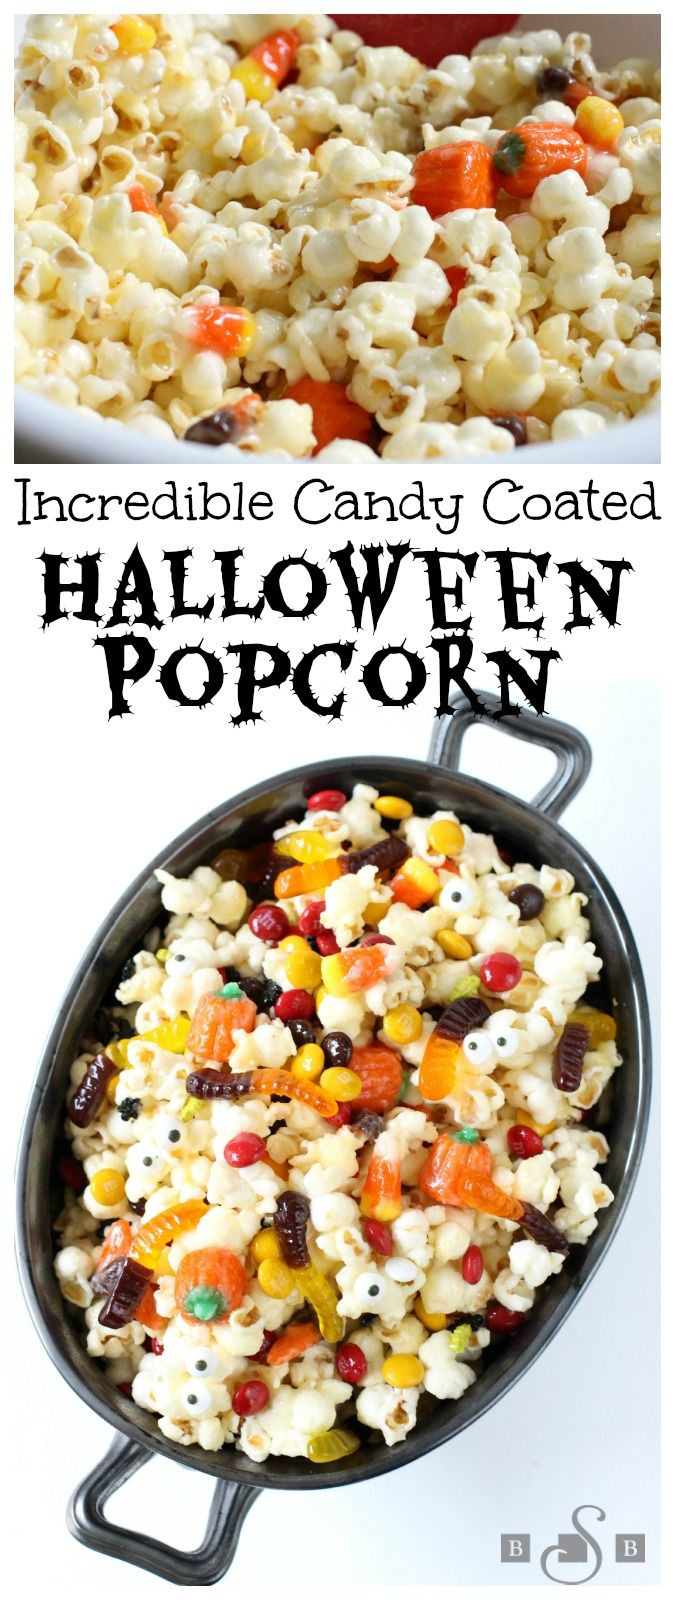 Candy Coated Halloween Popcorn | This treat is so delicious, it's scary! Share with the whole family!